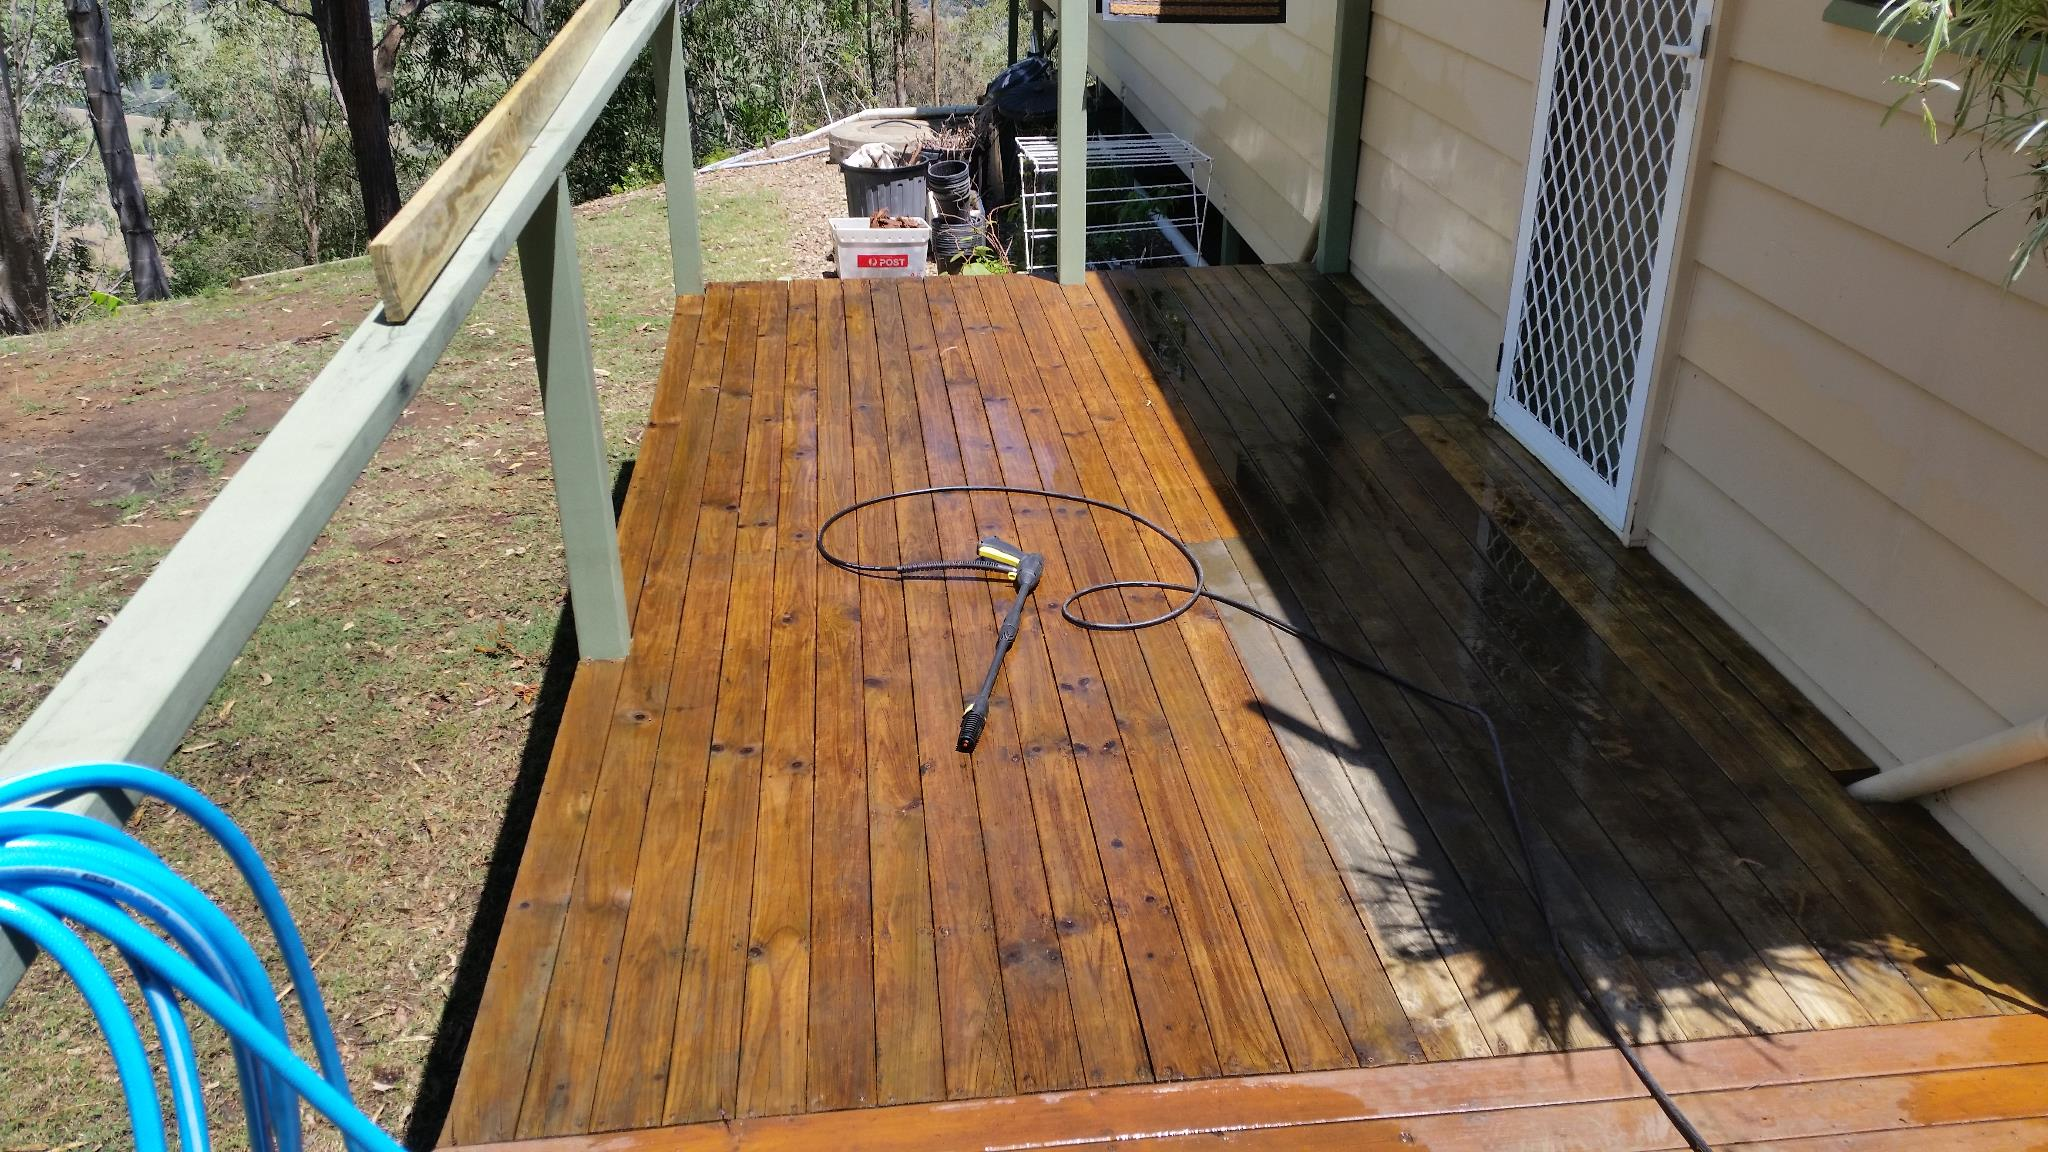 Cleaning the last deck